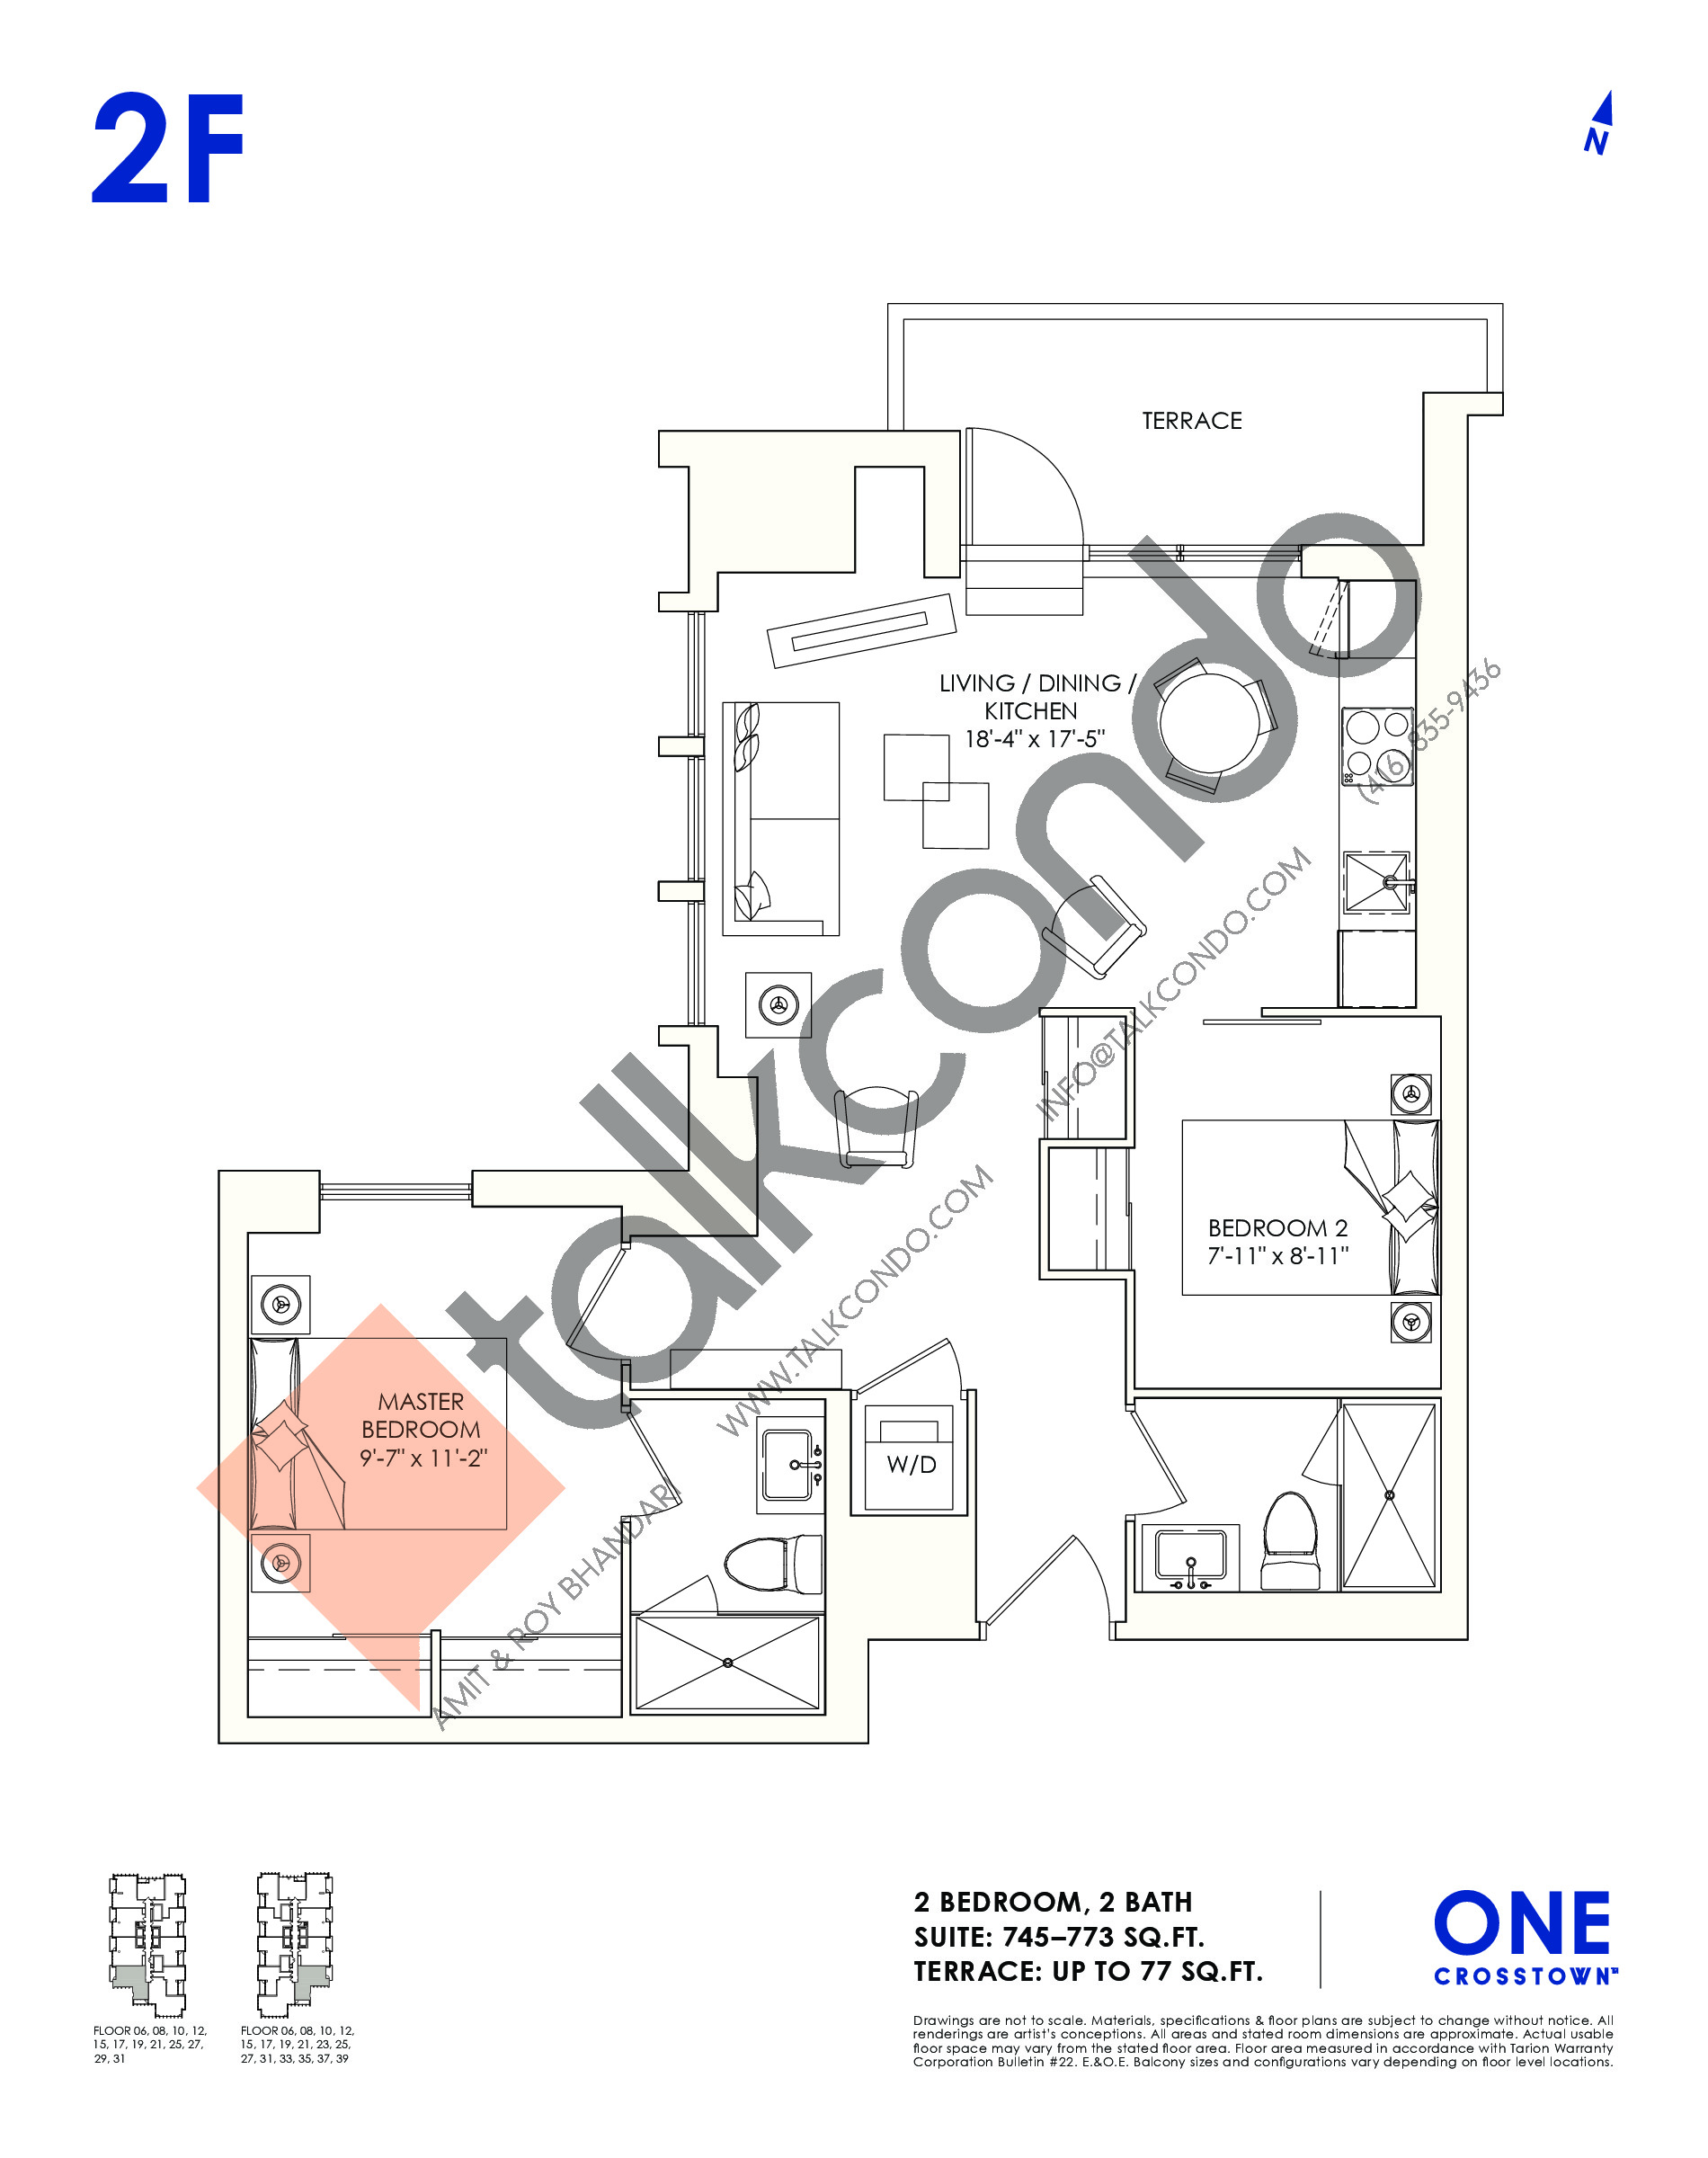 2F Floor Plan at One Crosstown Condos - 773 sq.ft